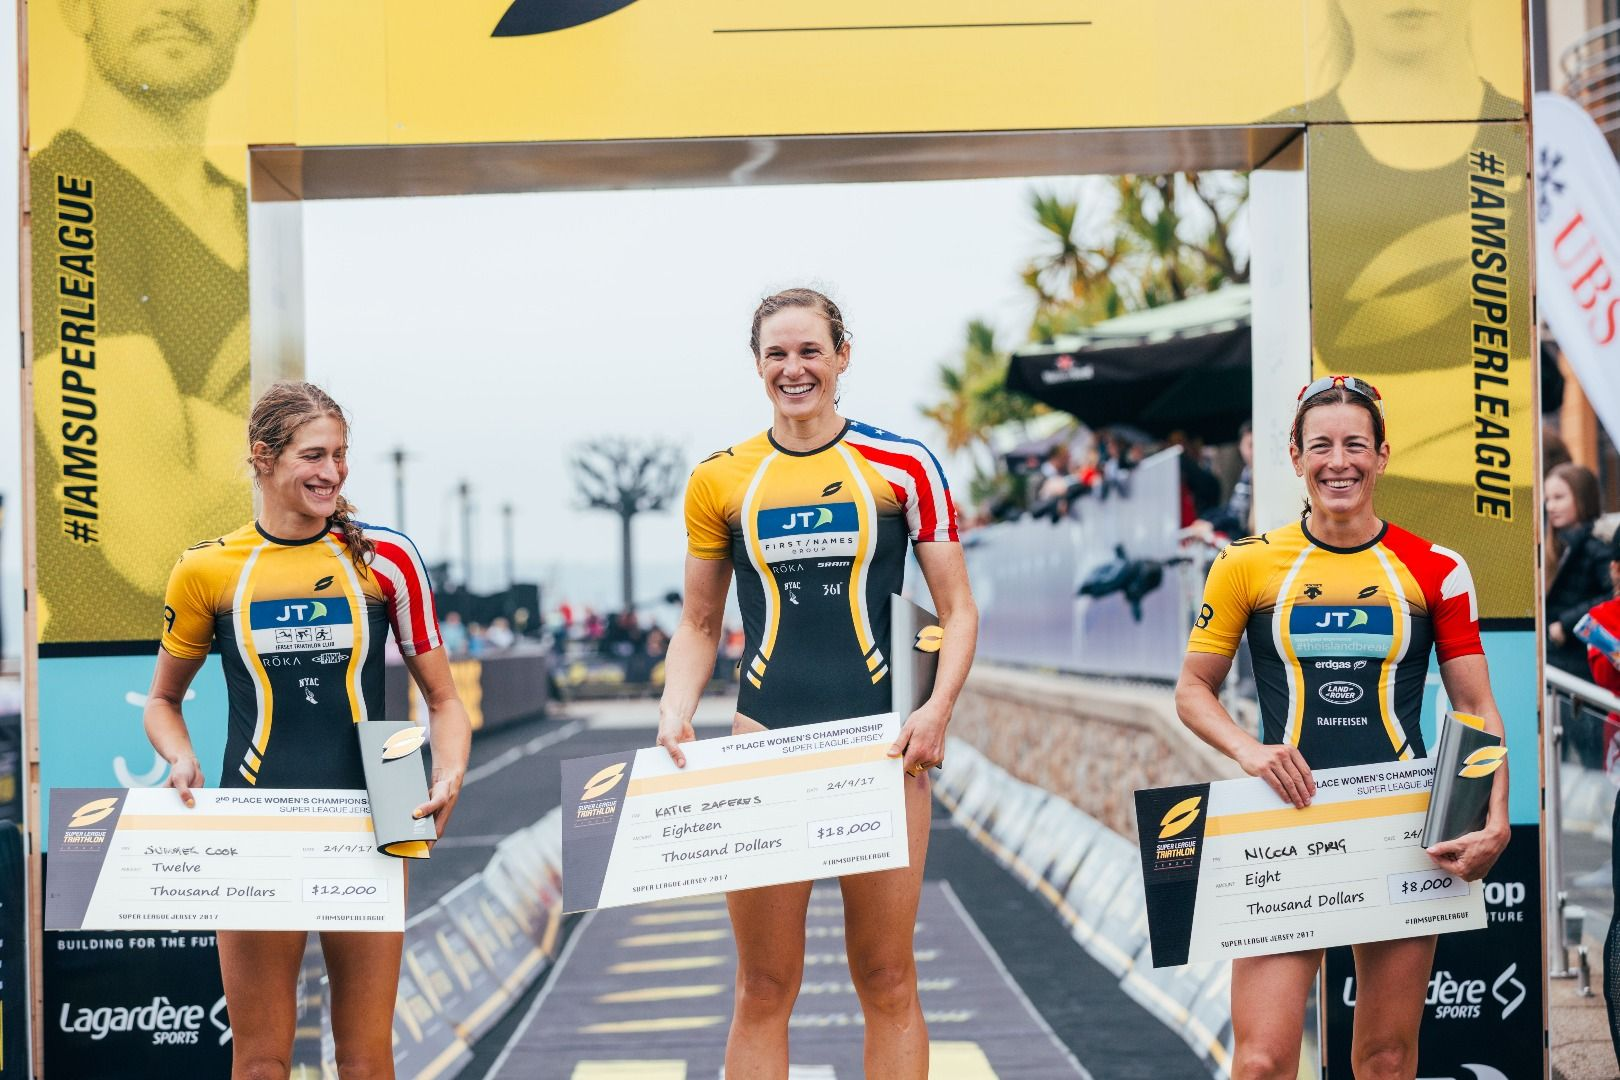 Super League Triathlon Crowns New Champions in Jersey